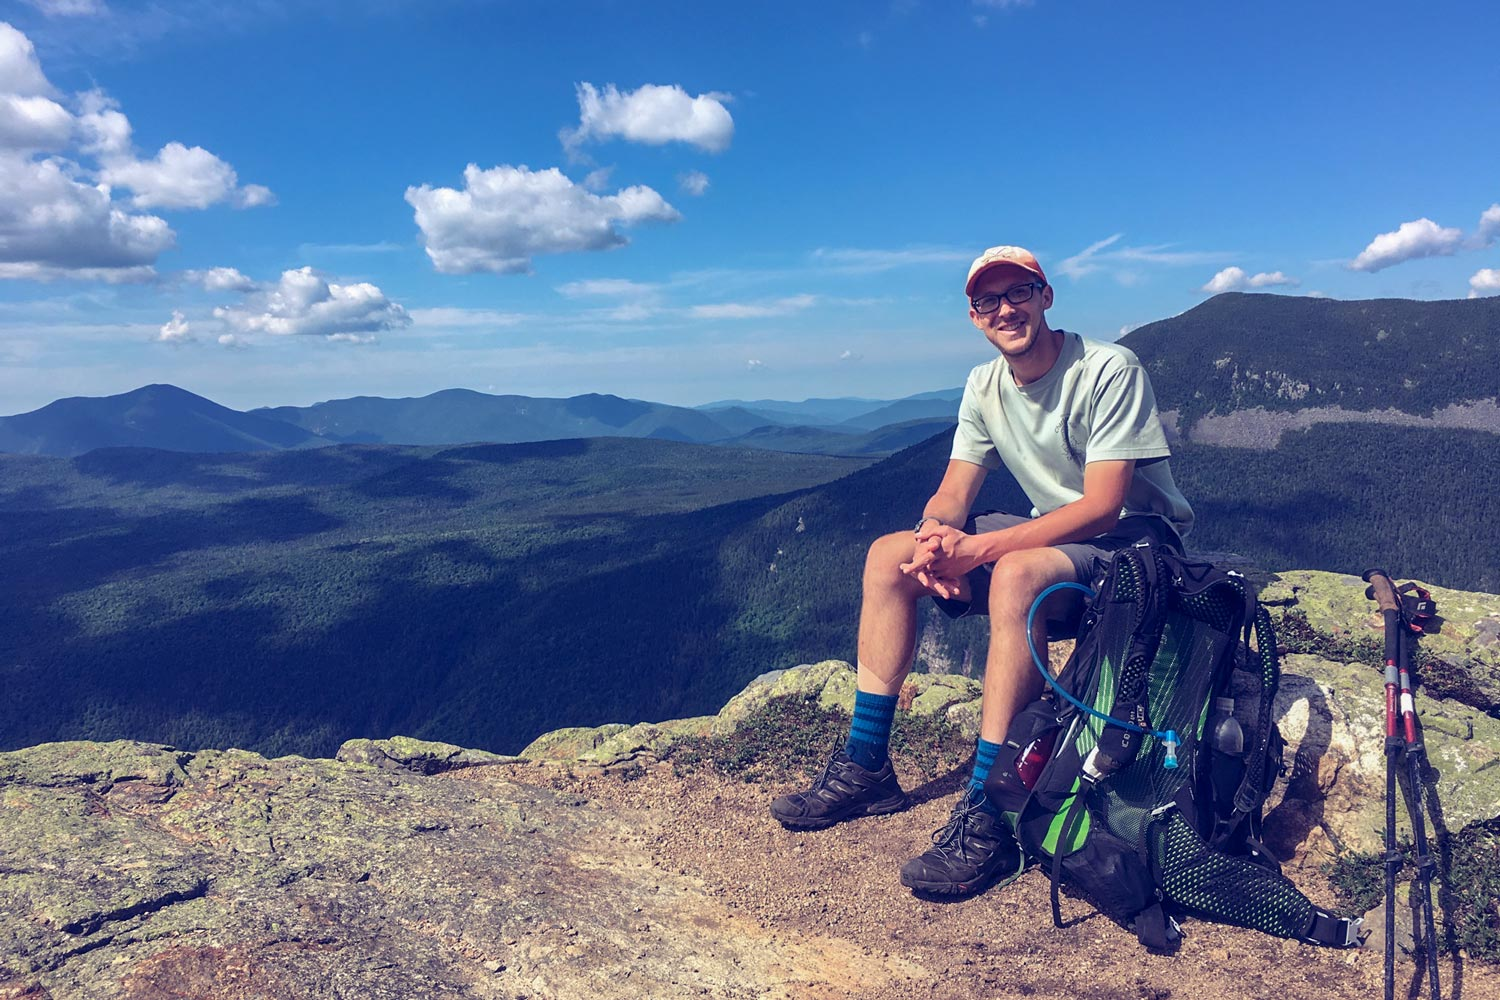 Underhill completed the Appalachian Trail in five months, starting in March 2016 and finishing in July. (